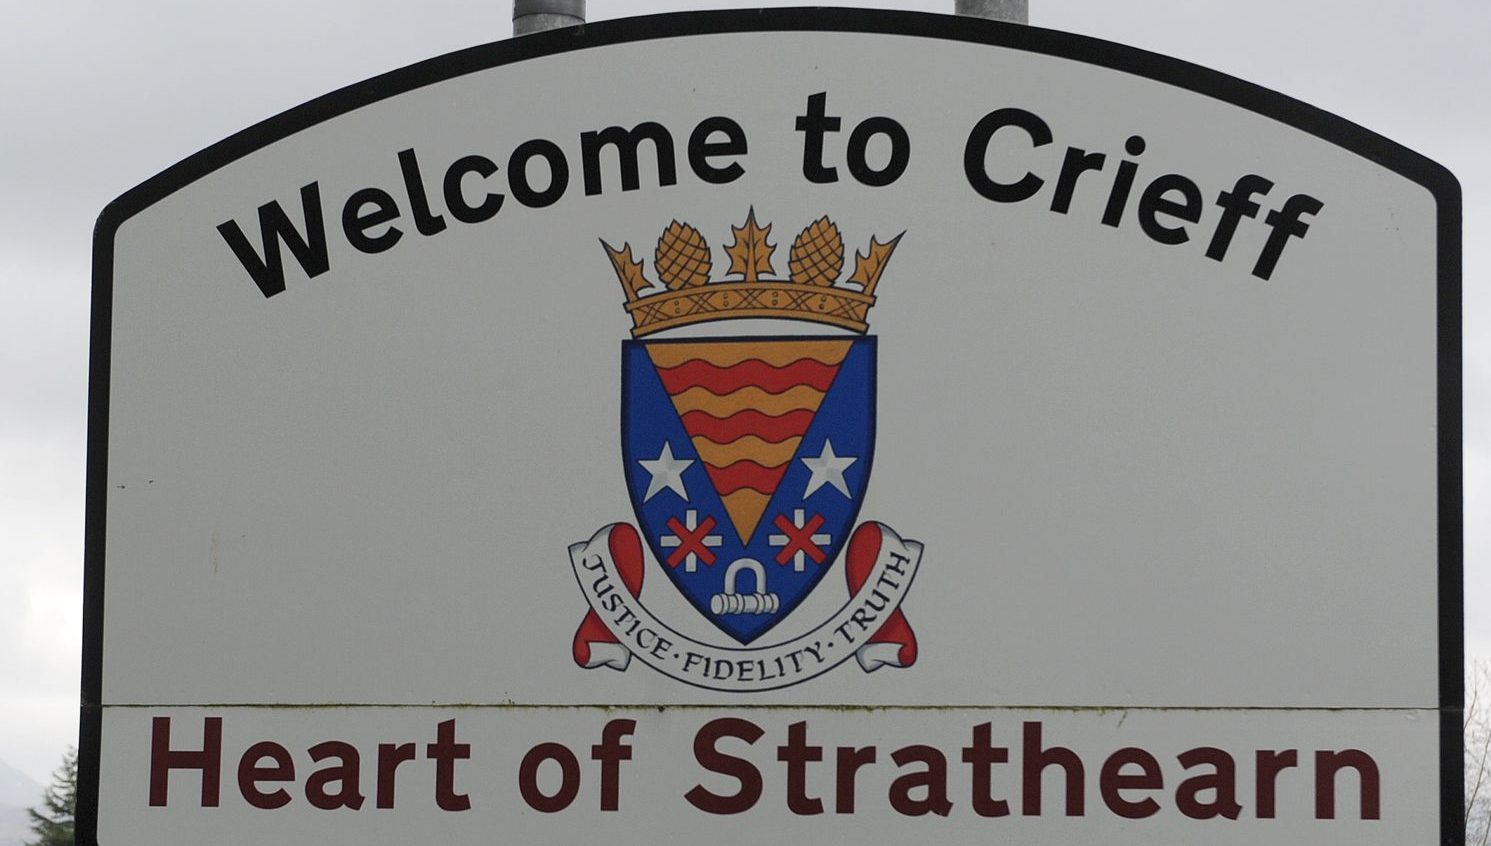 A road sign at an entrance to Crieff.